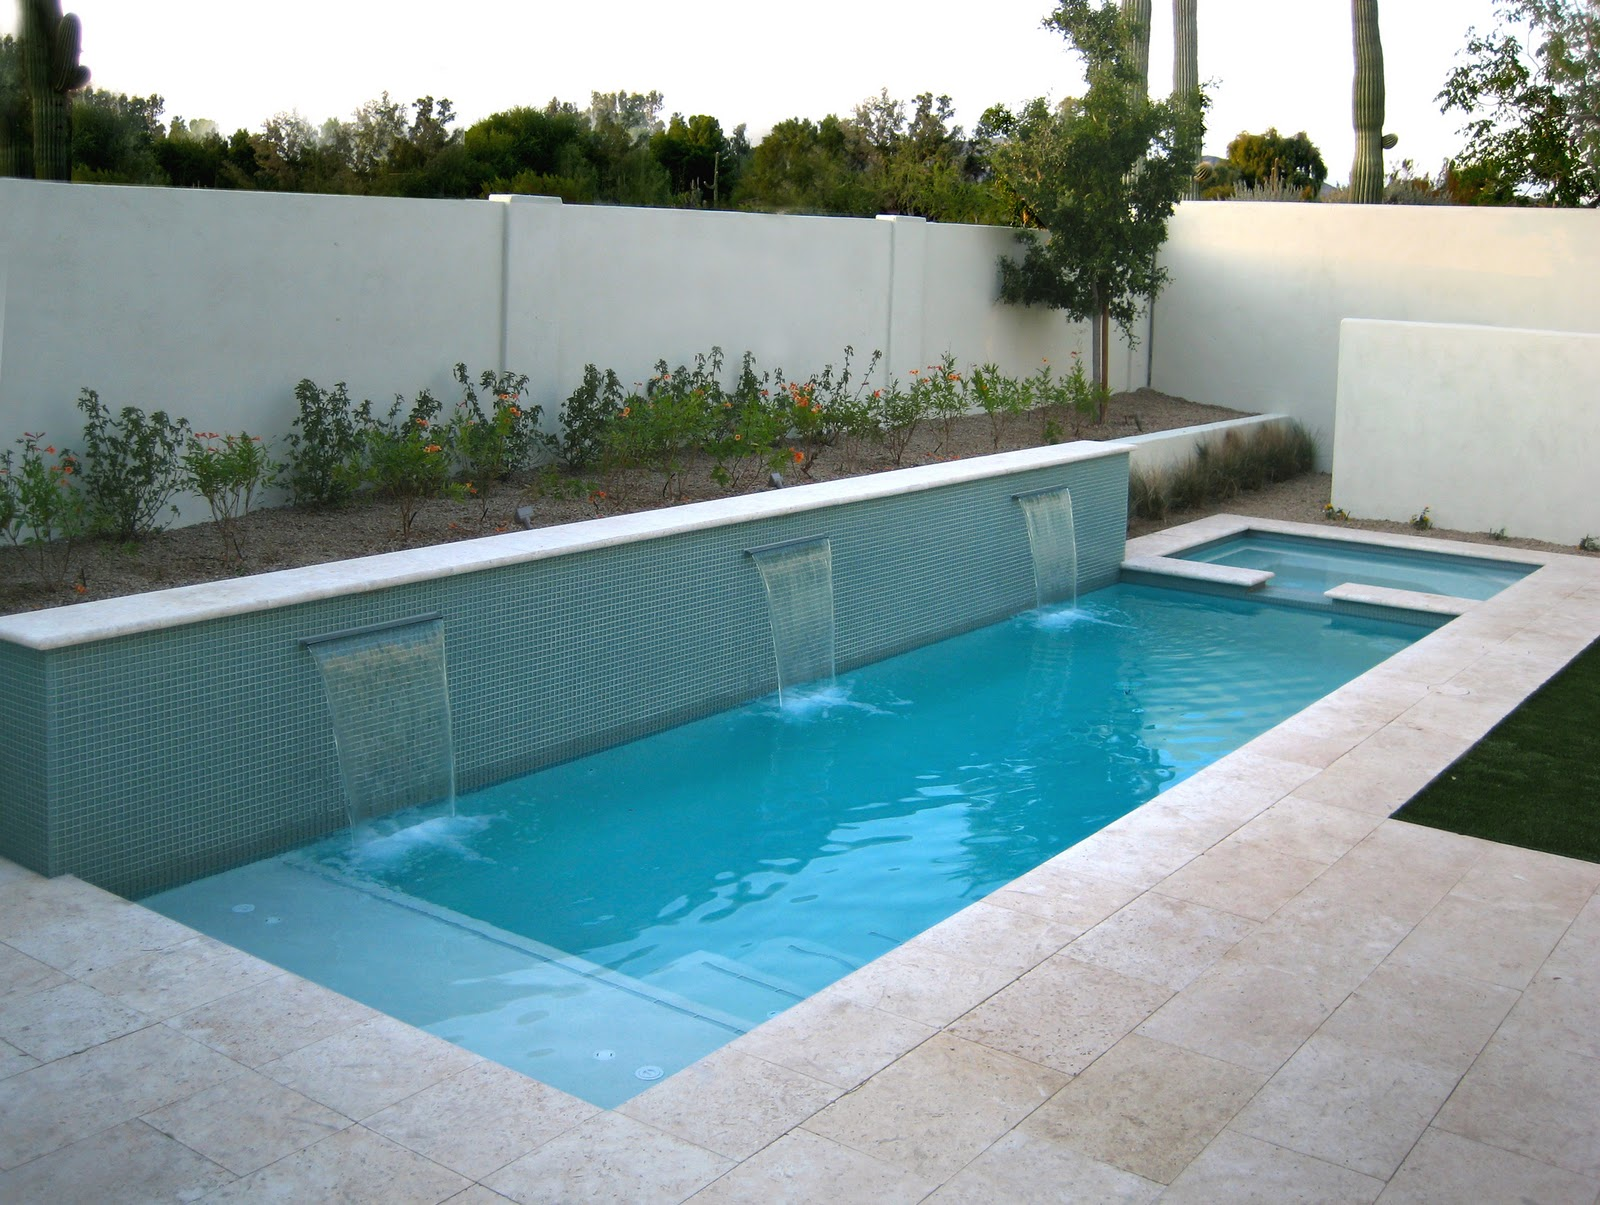 25 fabulous small backyard designs with swimming pool for Swimming pool designs and plans